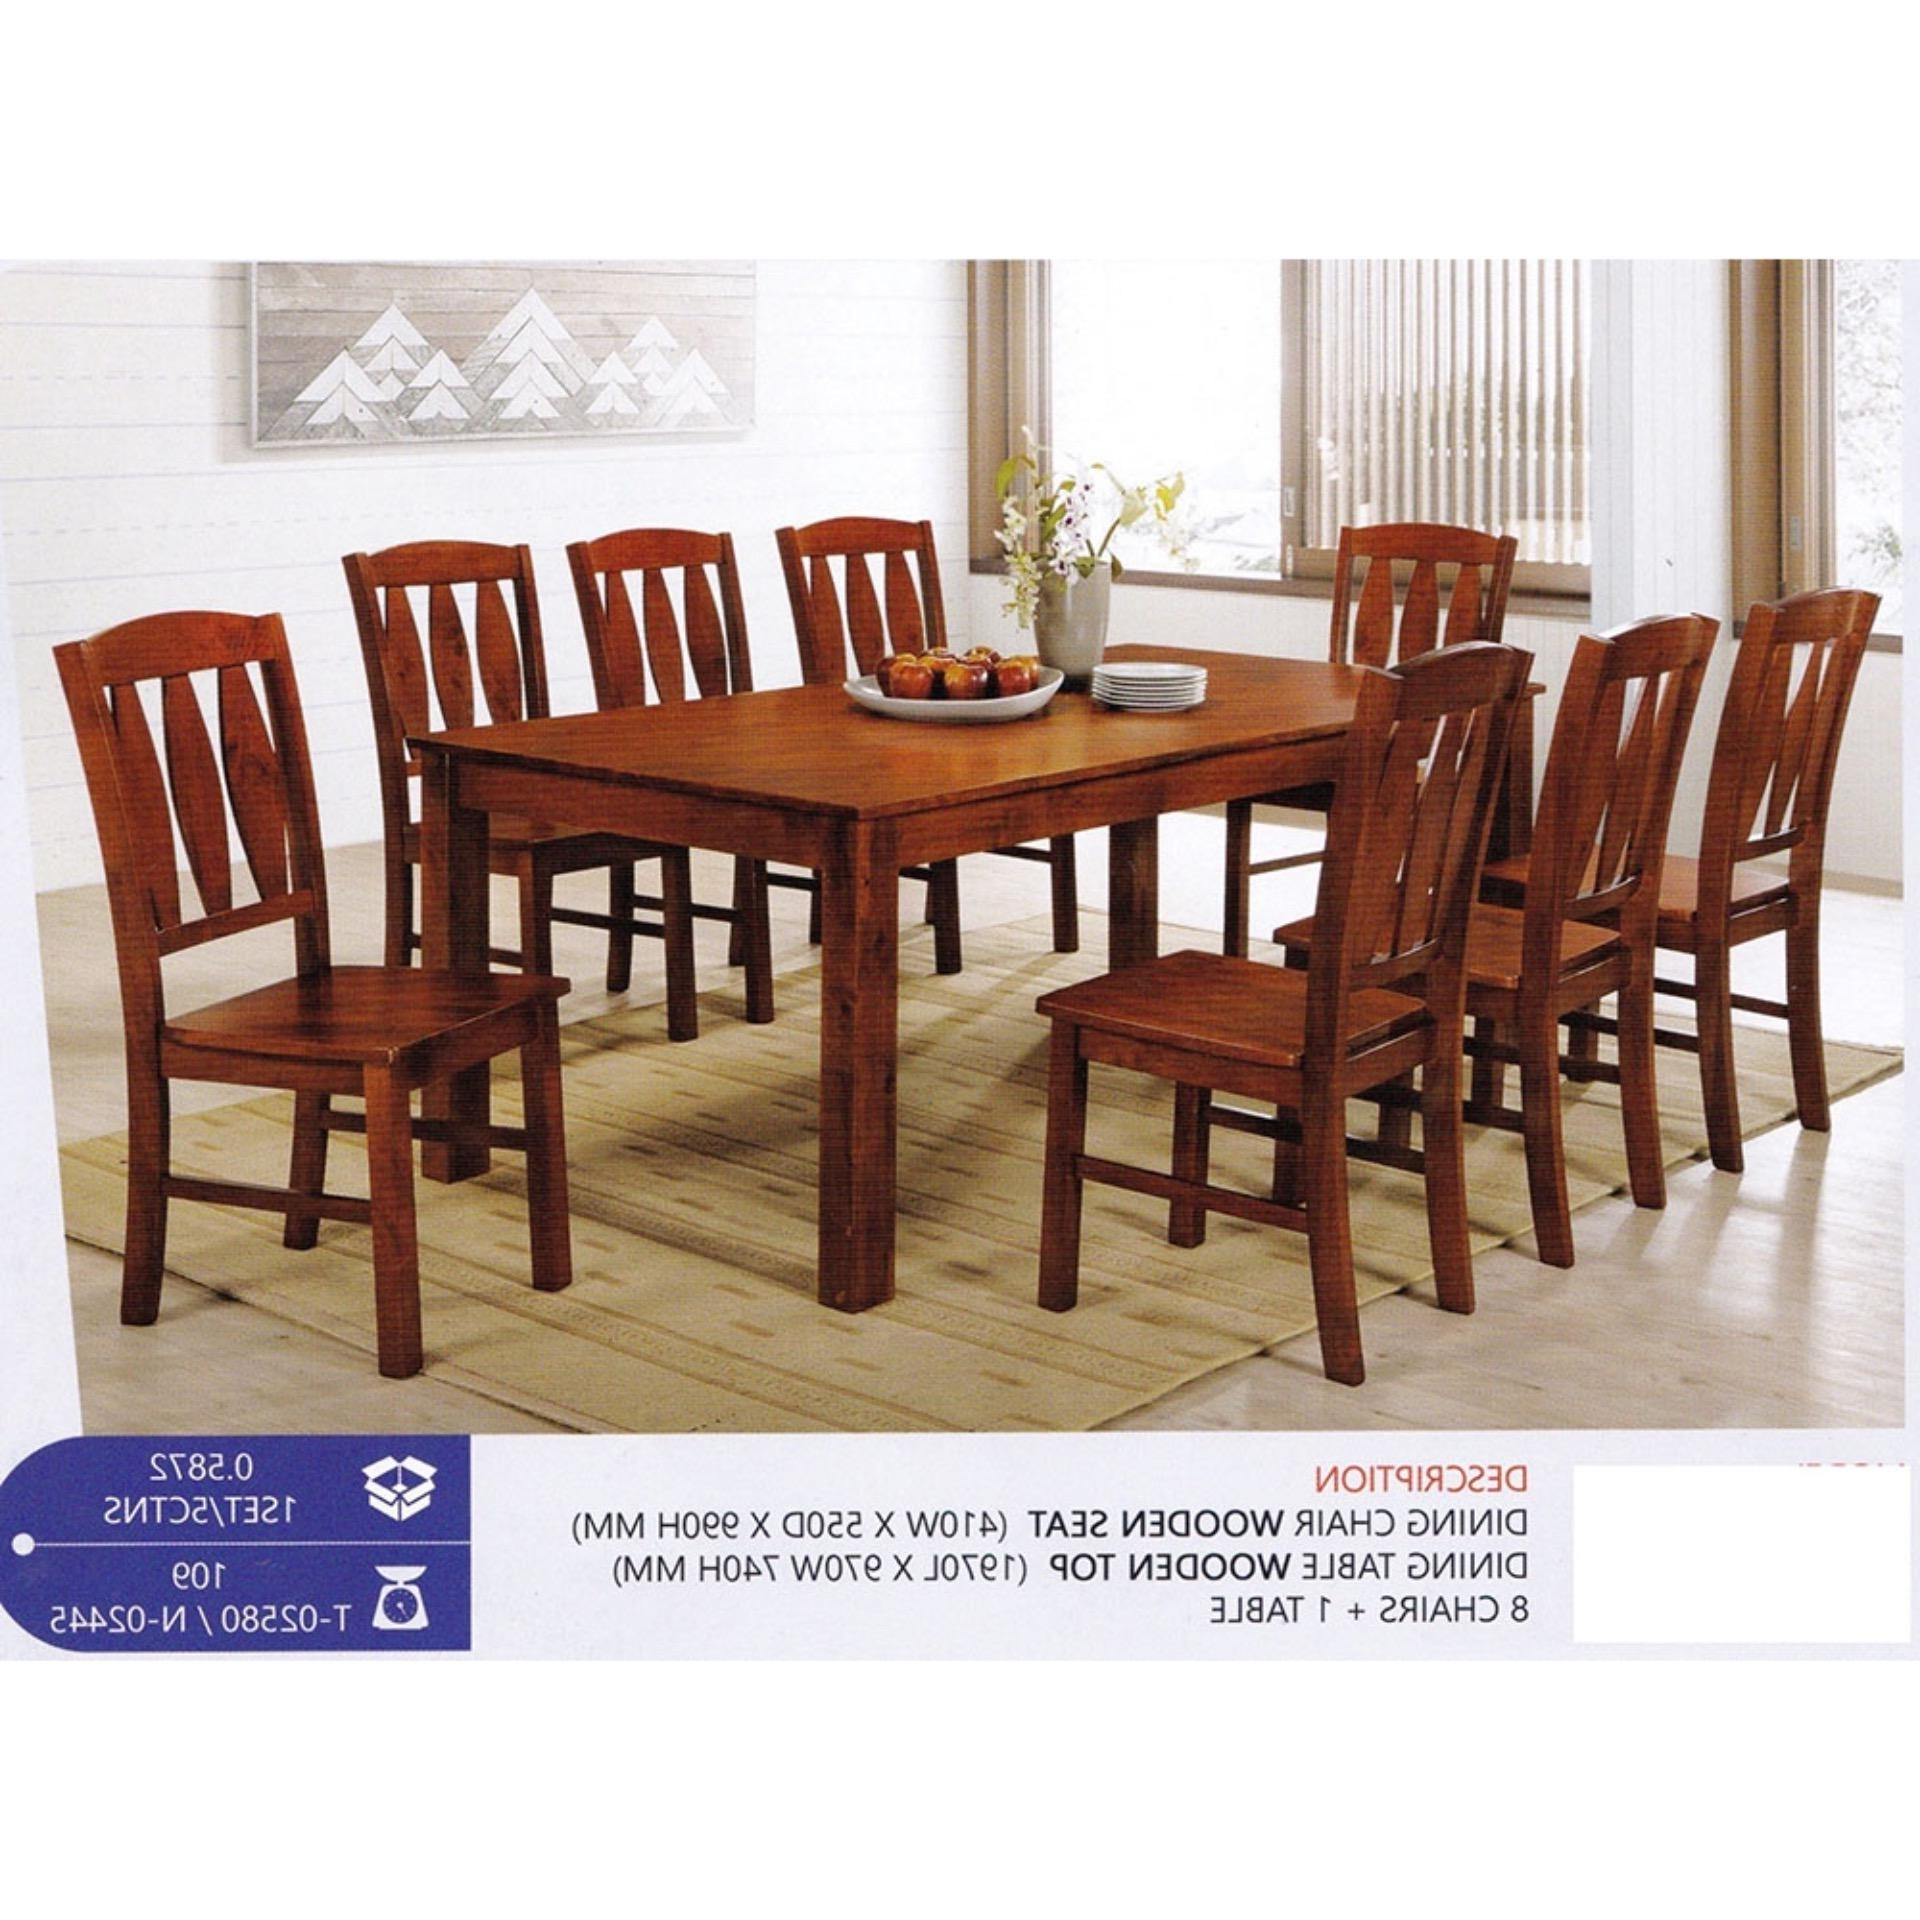 Fully Solid Wood 1+8 Dining Table Ch (End 5/2/2021 12:00 Am) Pertaining To Well Known Dining Table Chair Sets (View 14 of 25)